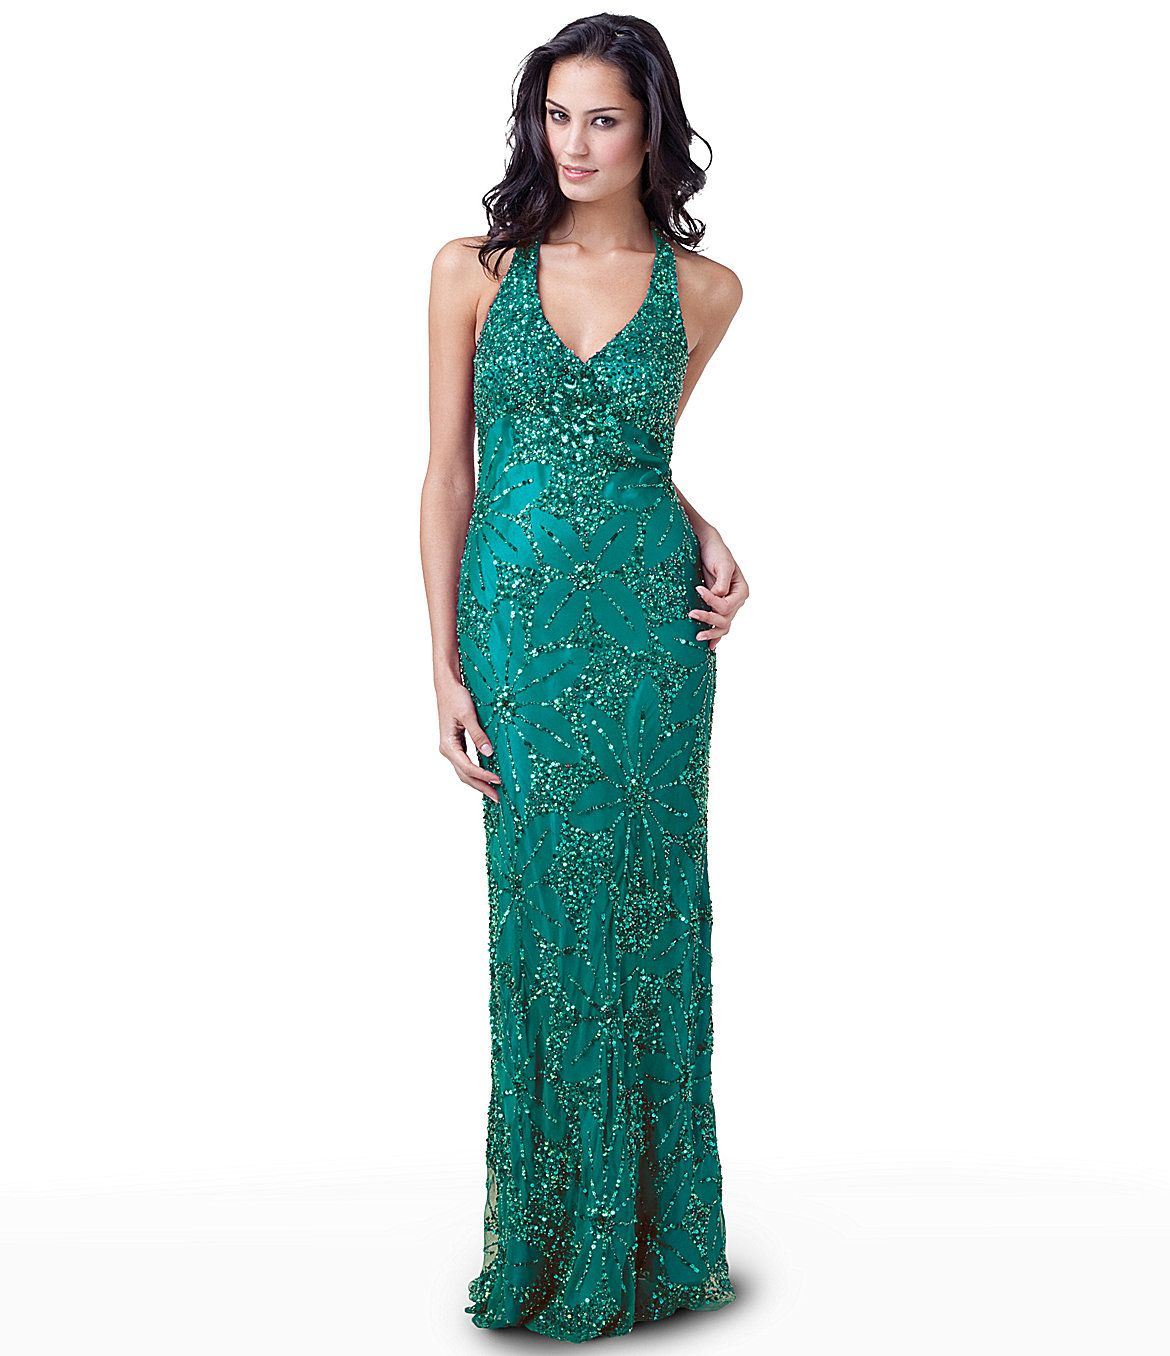 Adrianna Papell for E! Live From the Red Carpet Beaded Halter Gown ...